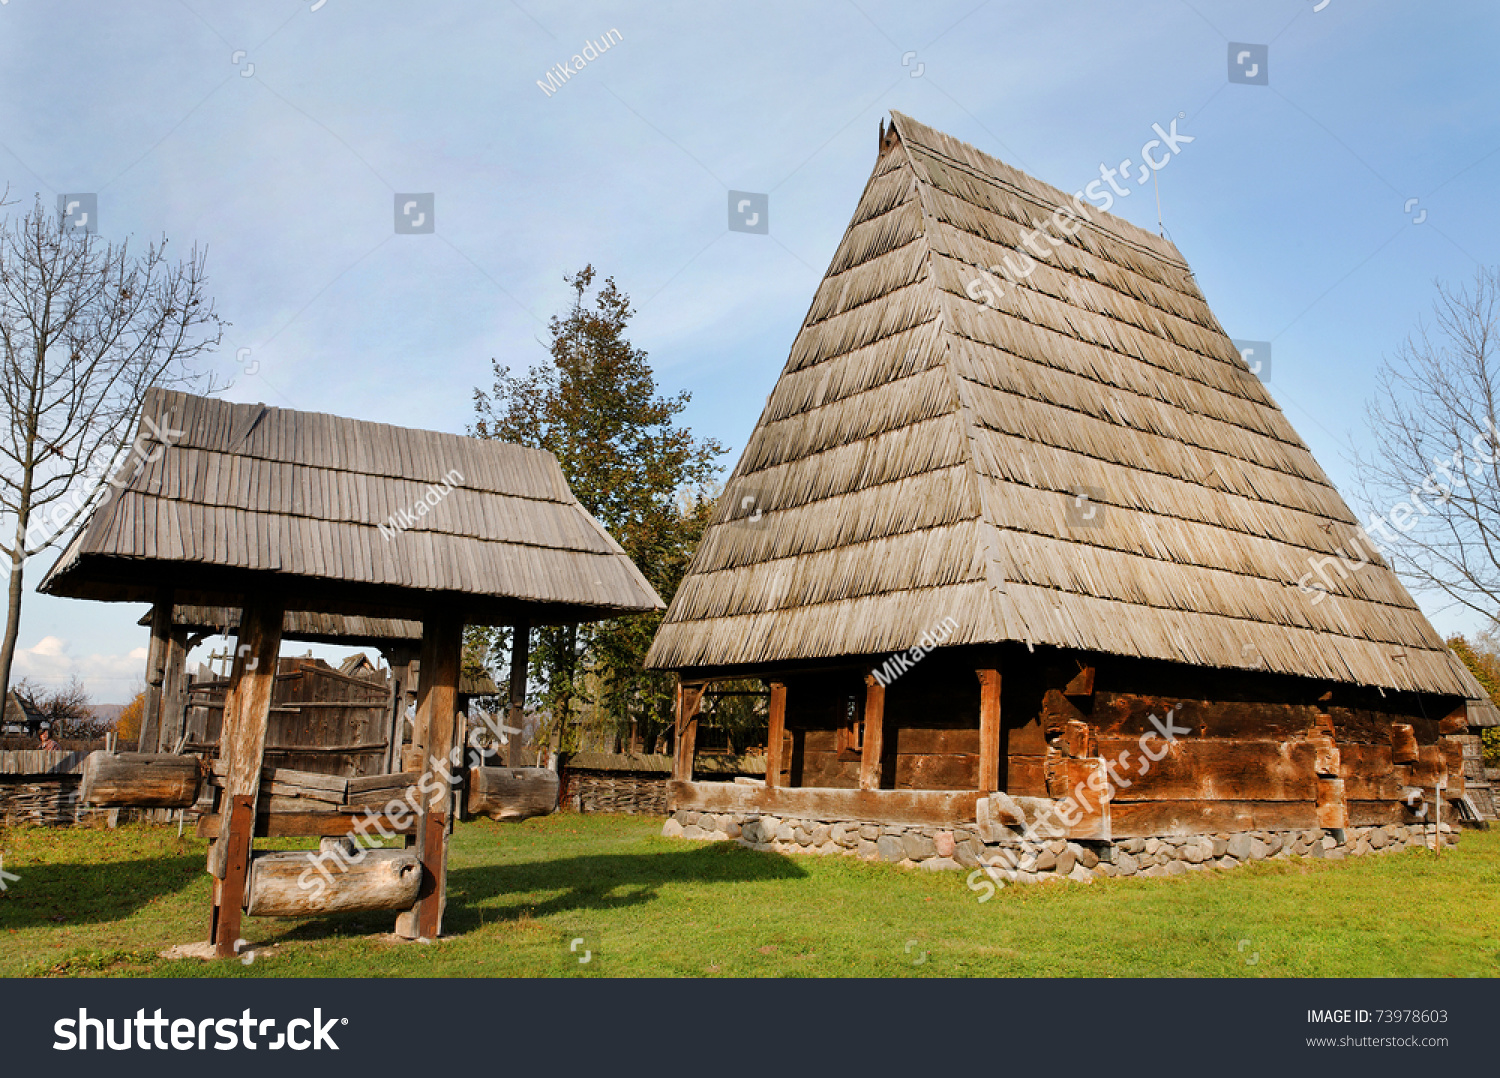 Traditional wooden house in maramures romania stock photo 73978603 shutterstock - Houses maramures wood ...